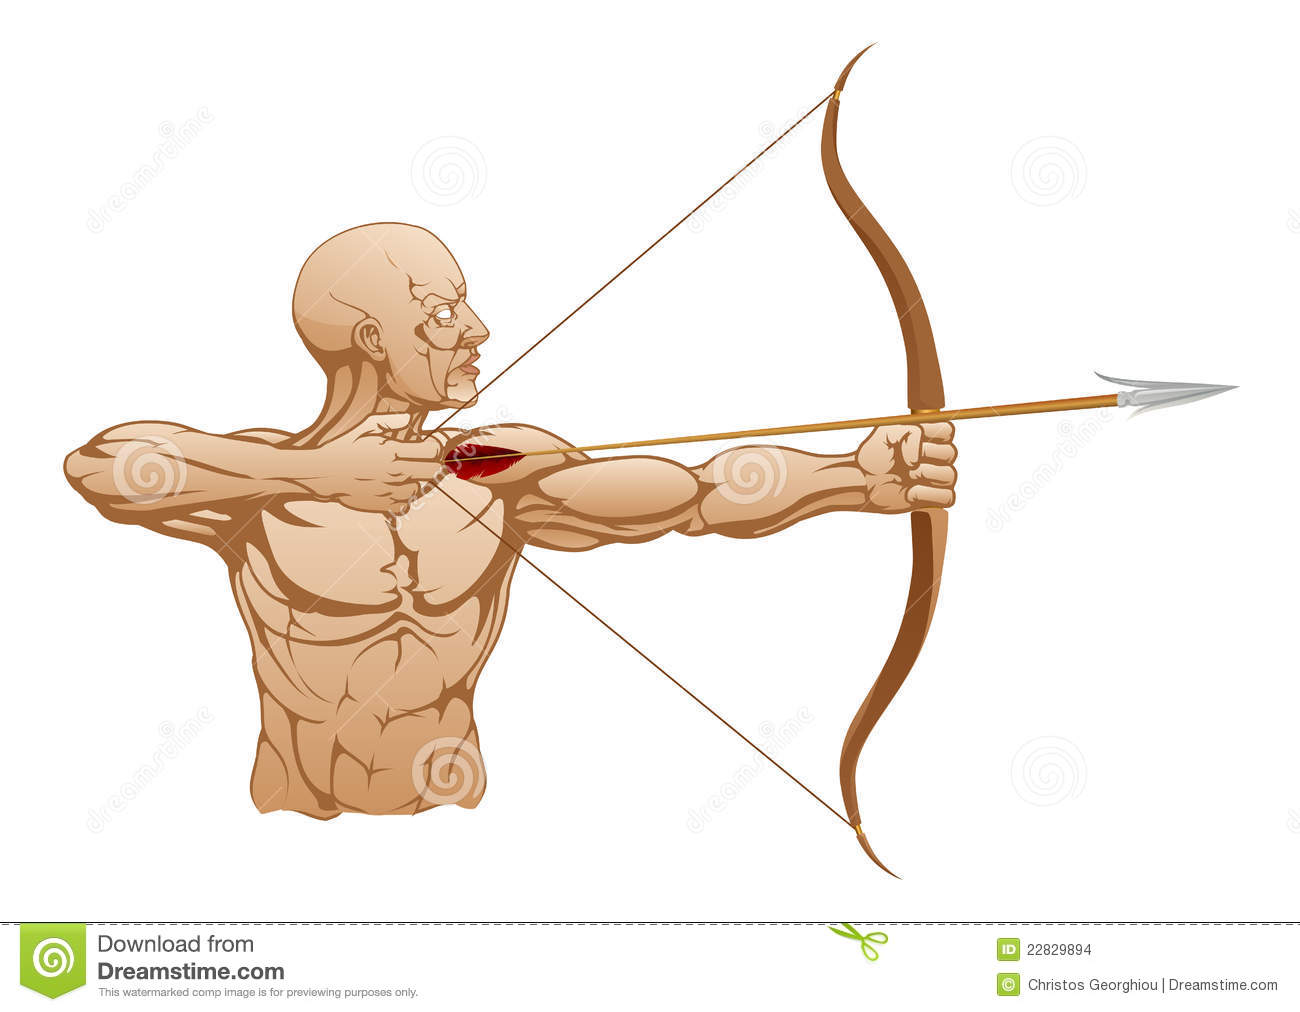 Illustration of strong archer holding bow and arrow ready to release.